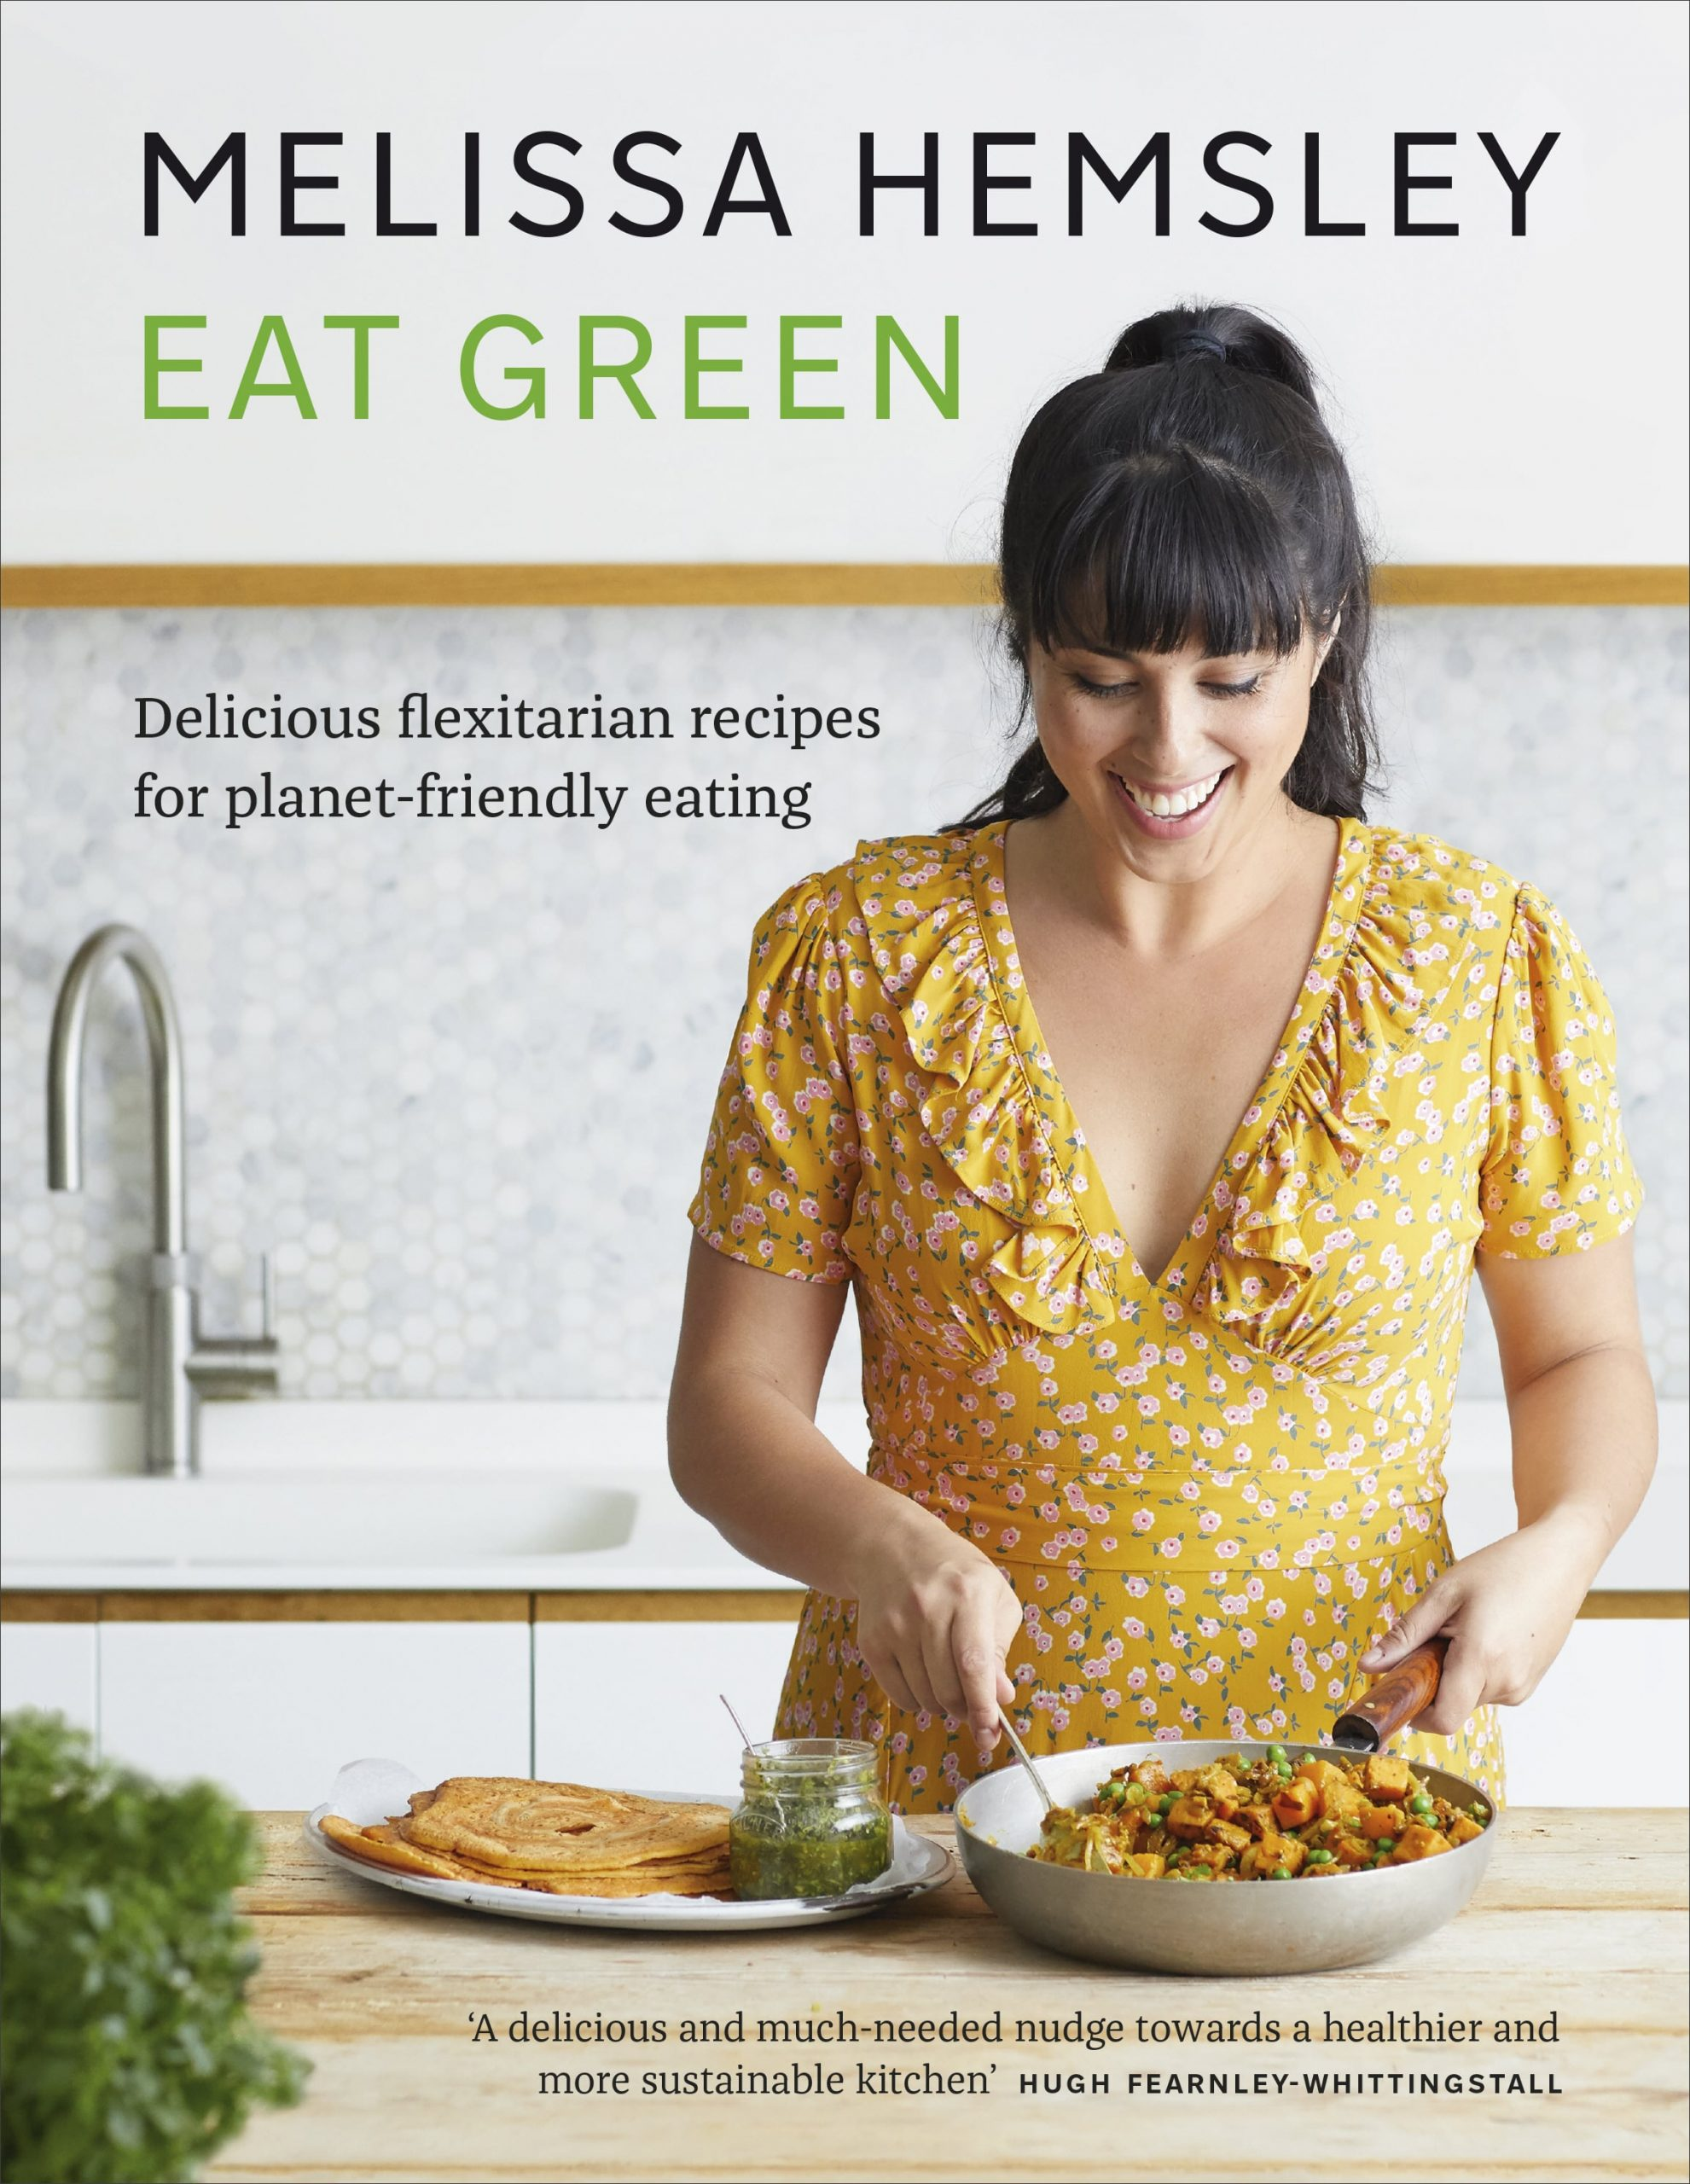 Eat Green - Delicious Flexitarian recipes for planet - friendly eating - Melissa Hemsley